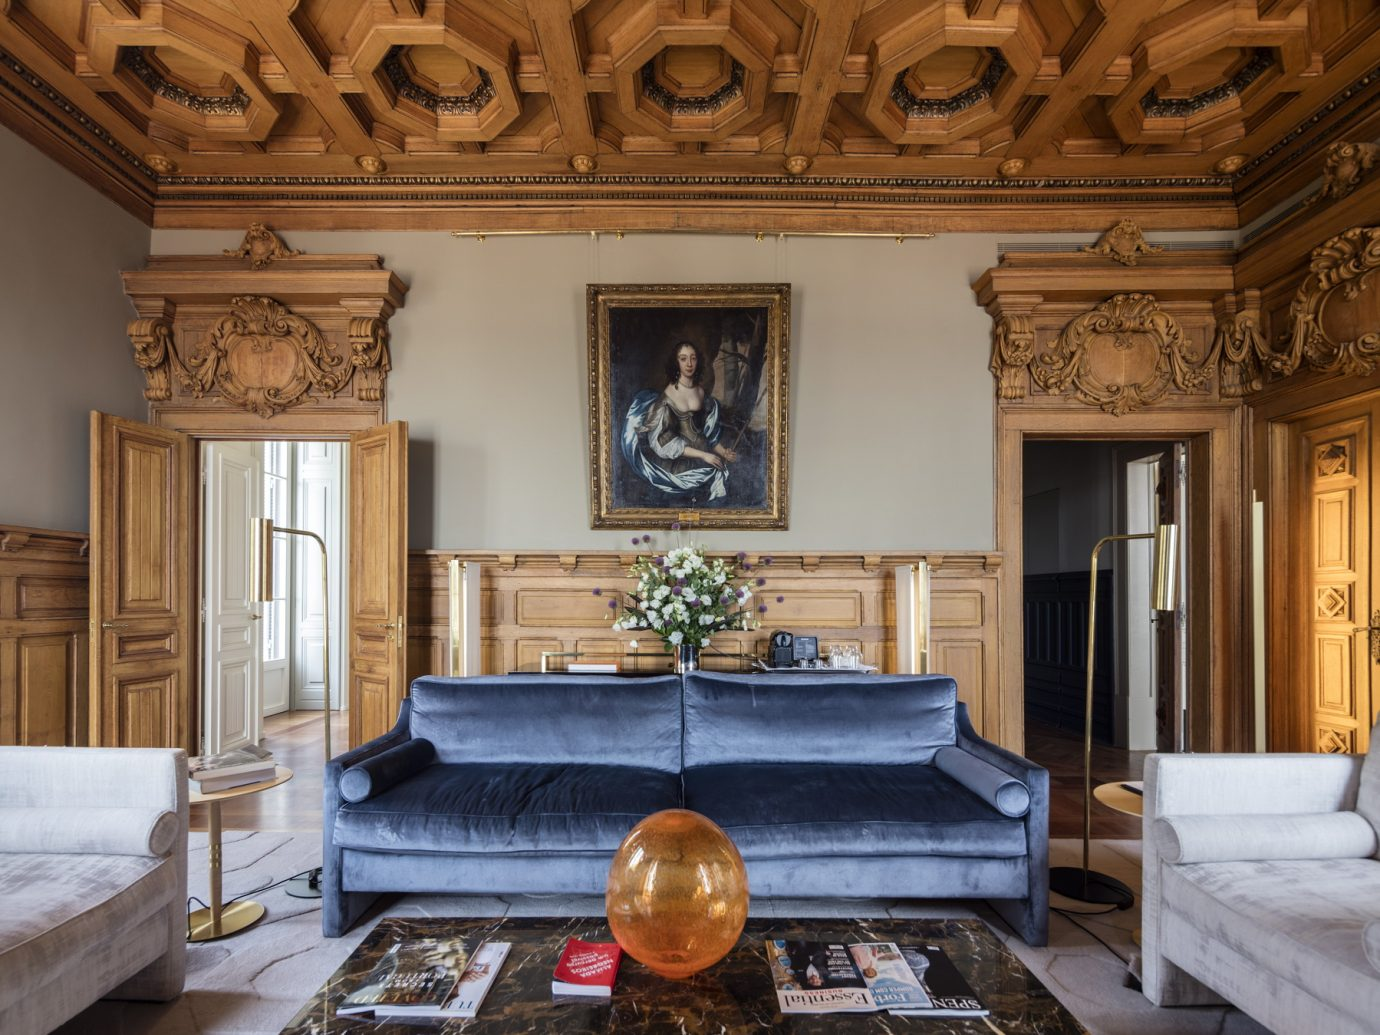 Luxurious interior space with blue velvet couch at Verride Palácio Santa Catarina